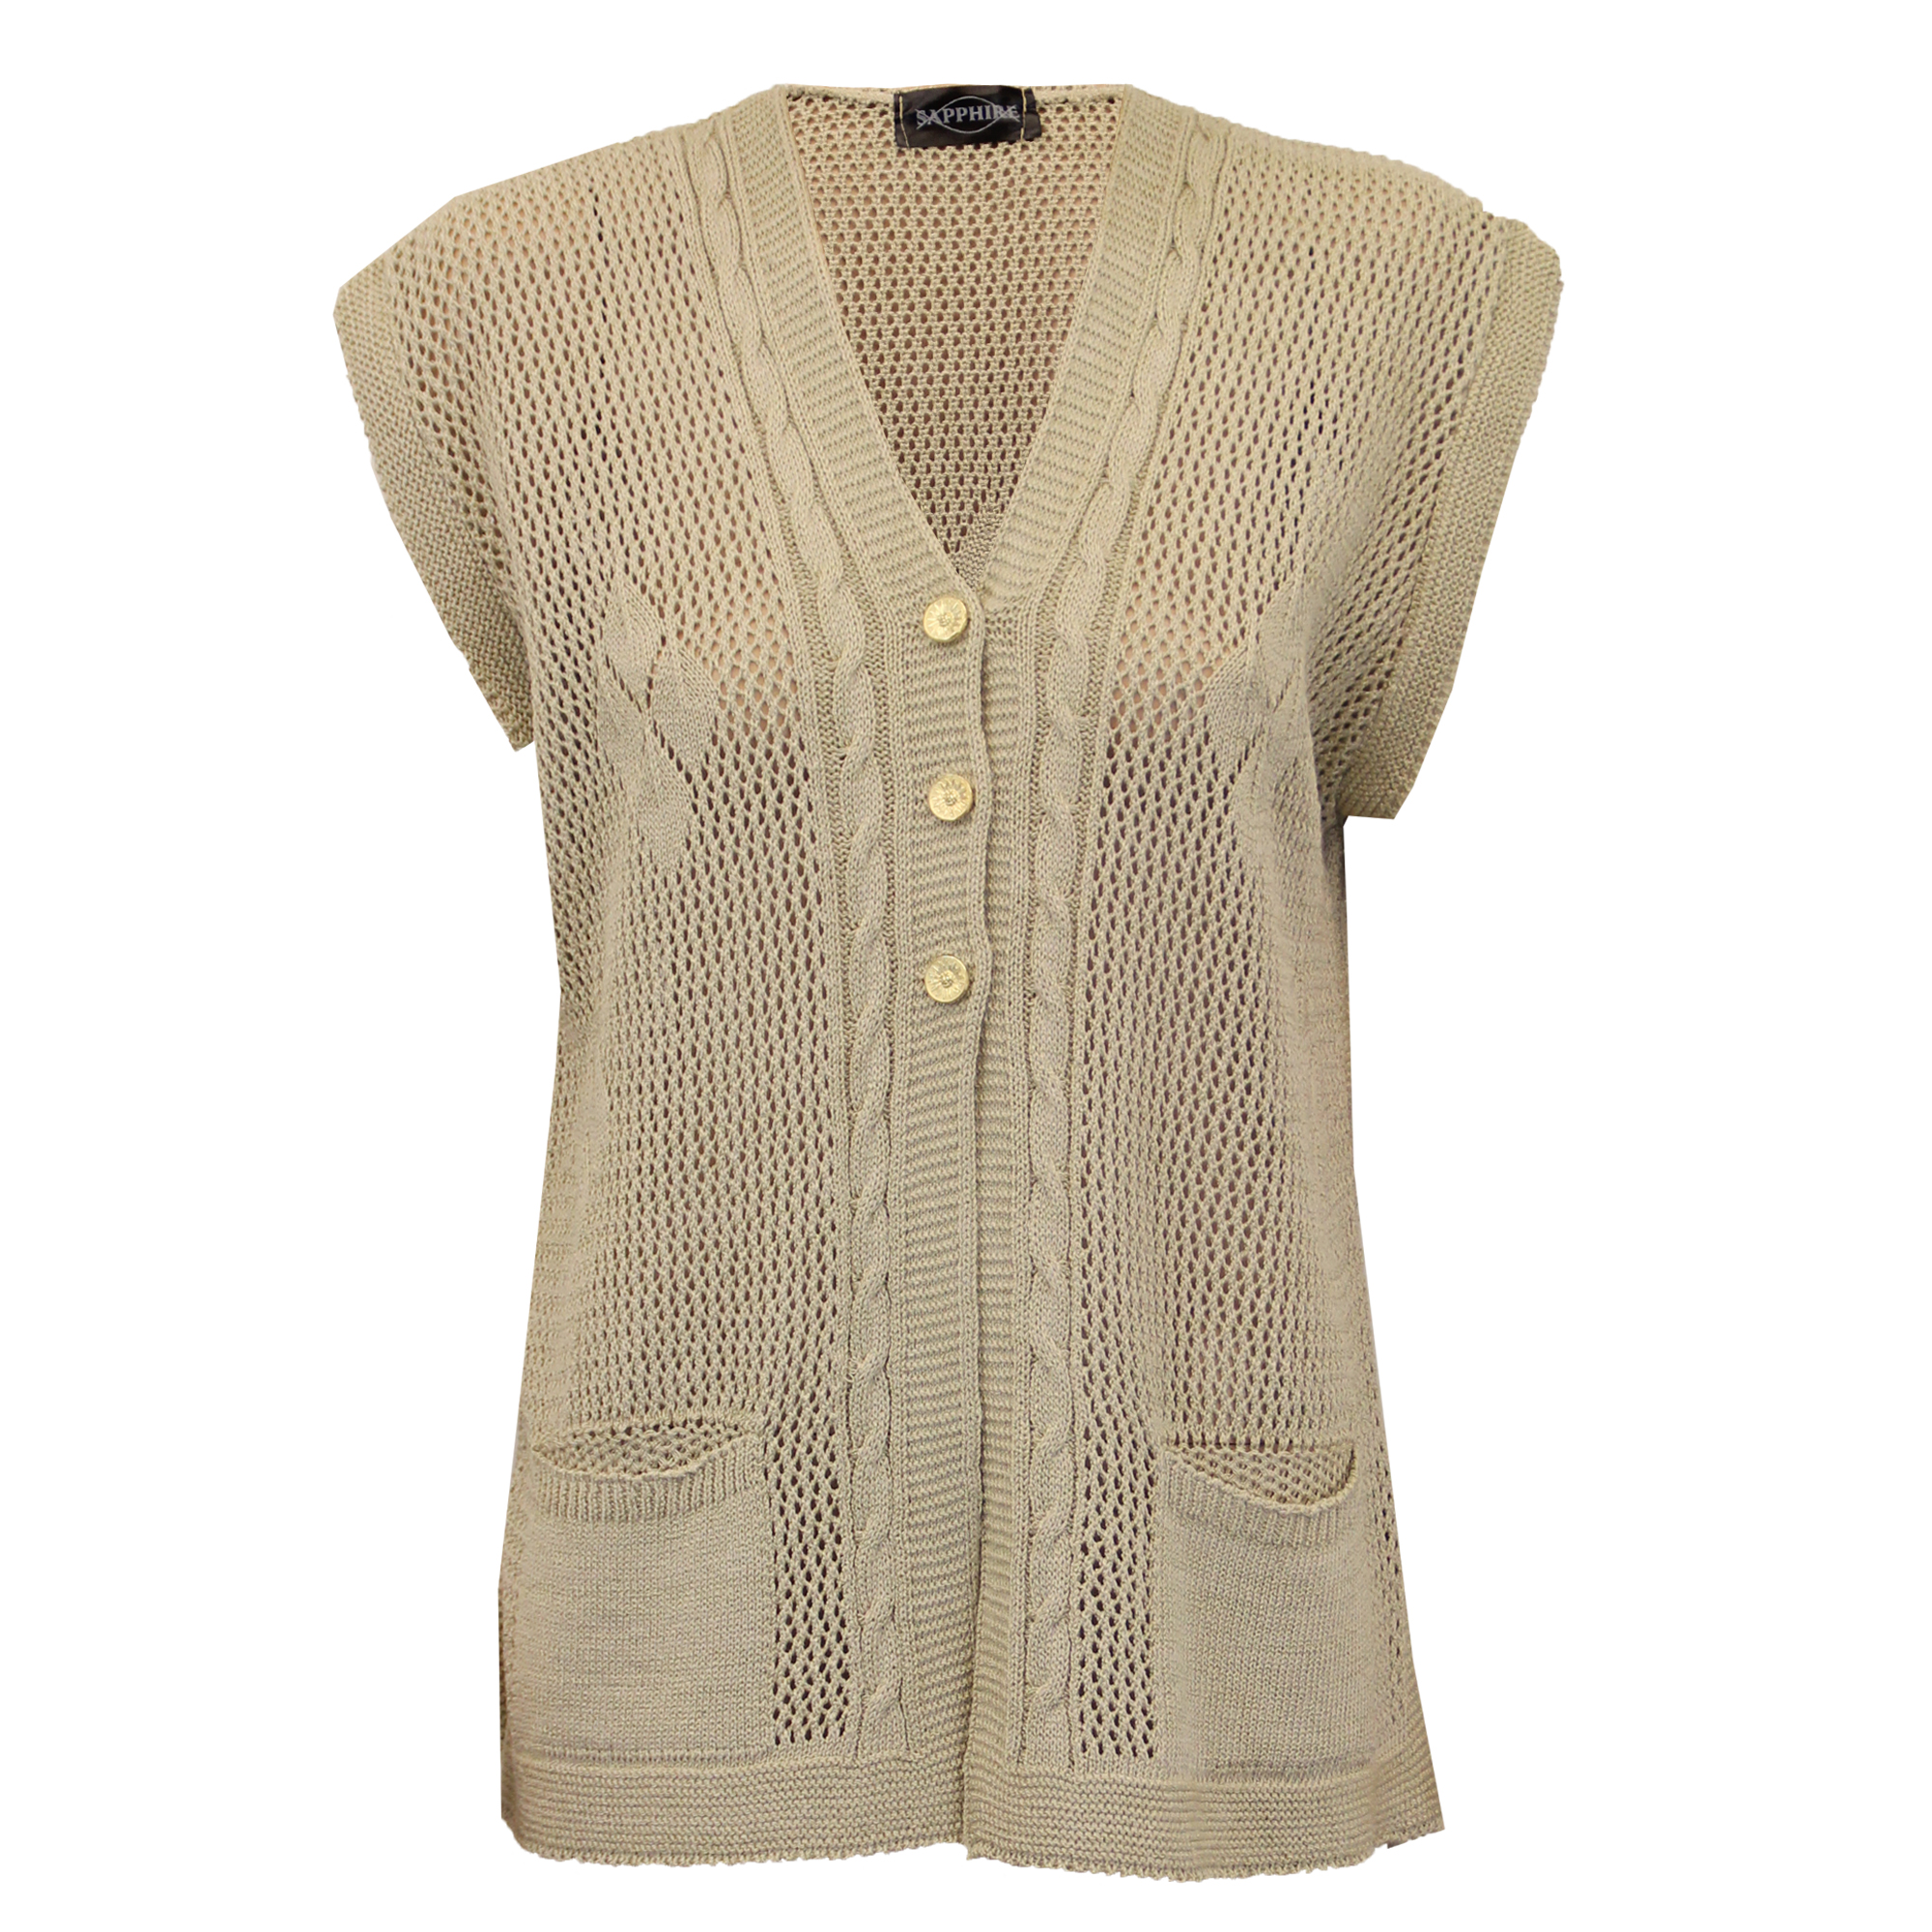 Knitted Gilet Pattern : Ladies Cardigans Womens Gilet Knitted Crochet Waistcoat ...